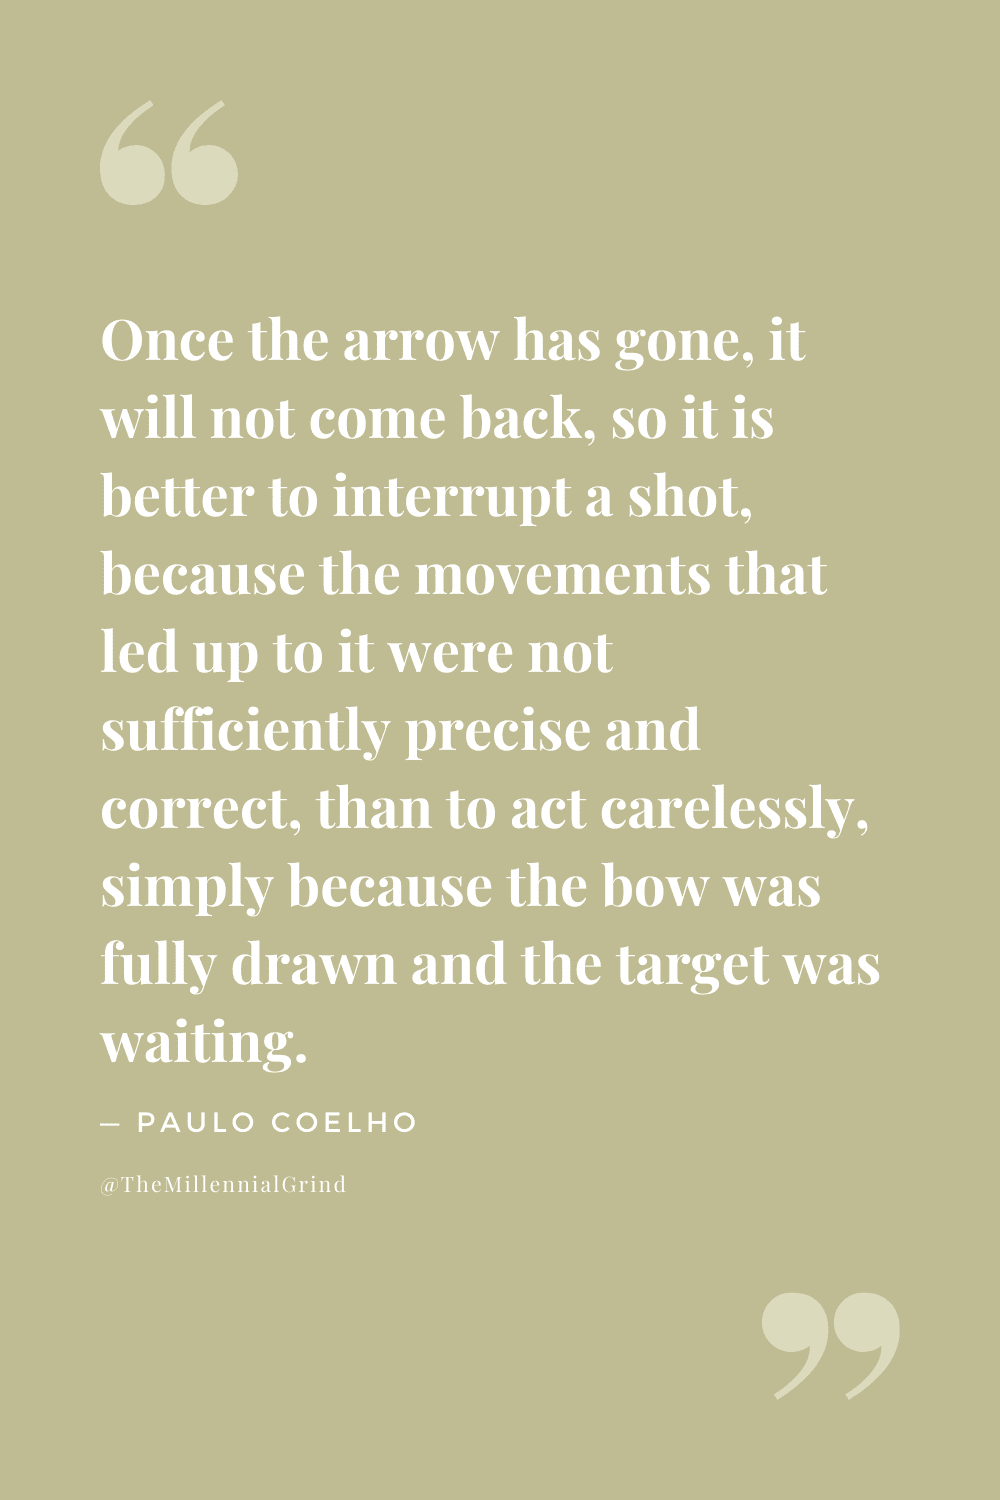 Quotes From The Archer by Paulo Coelho